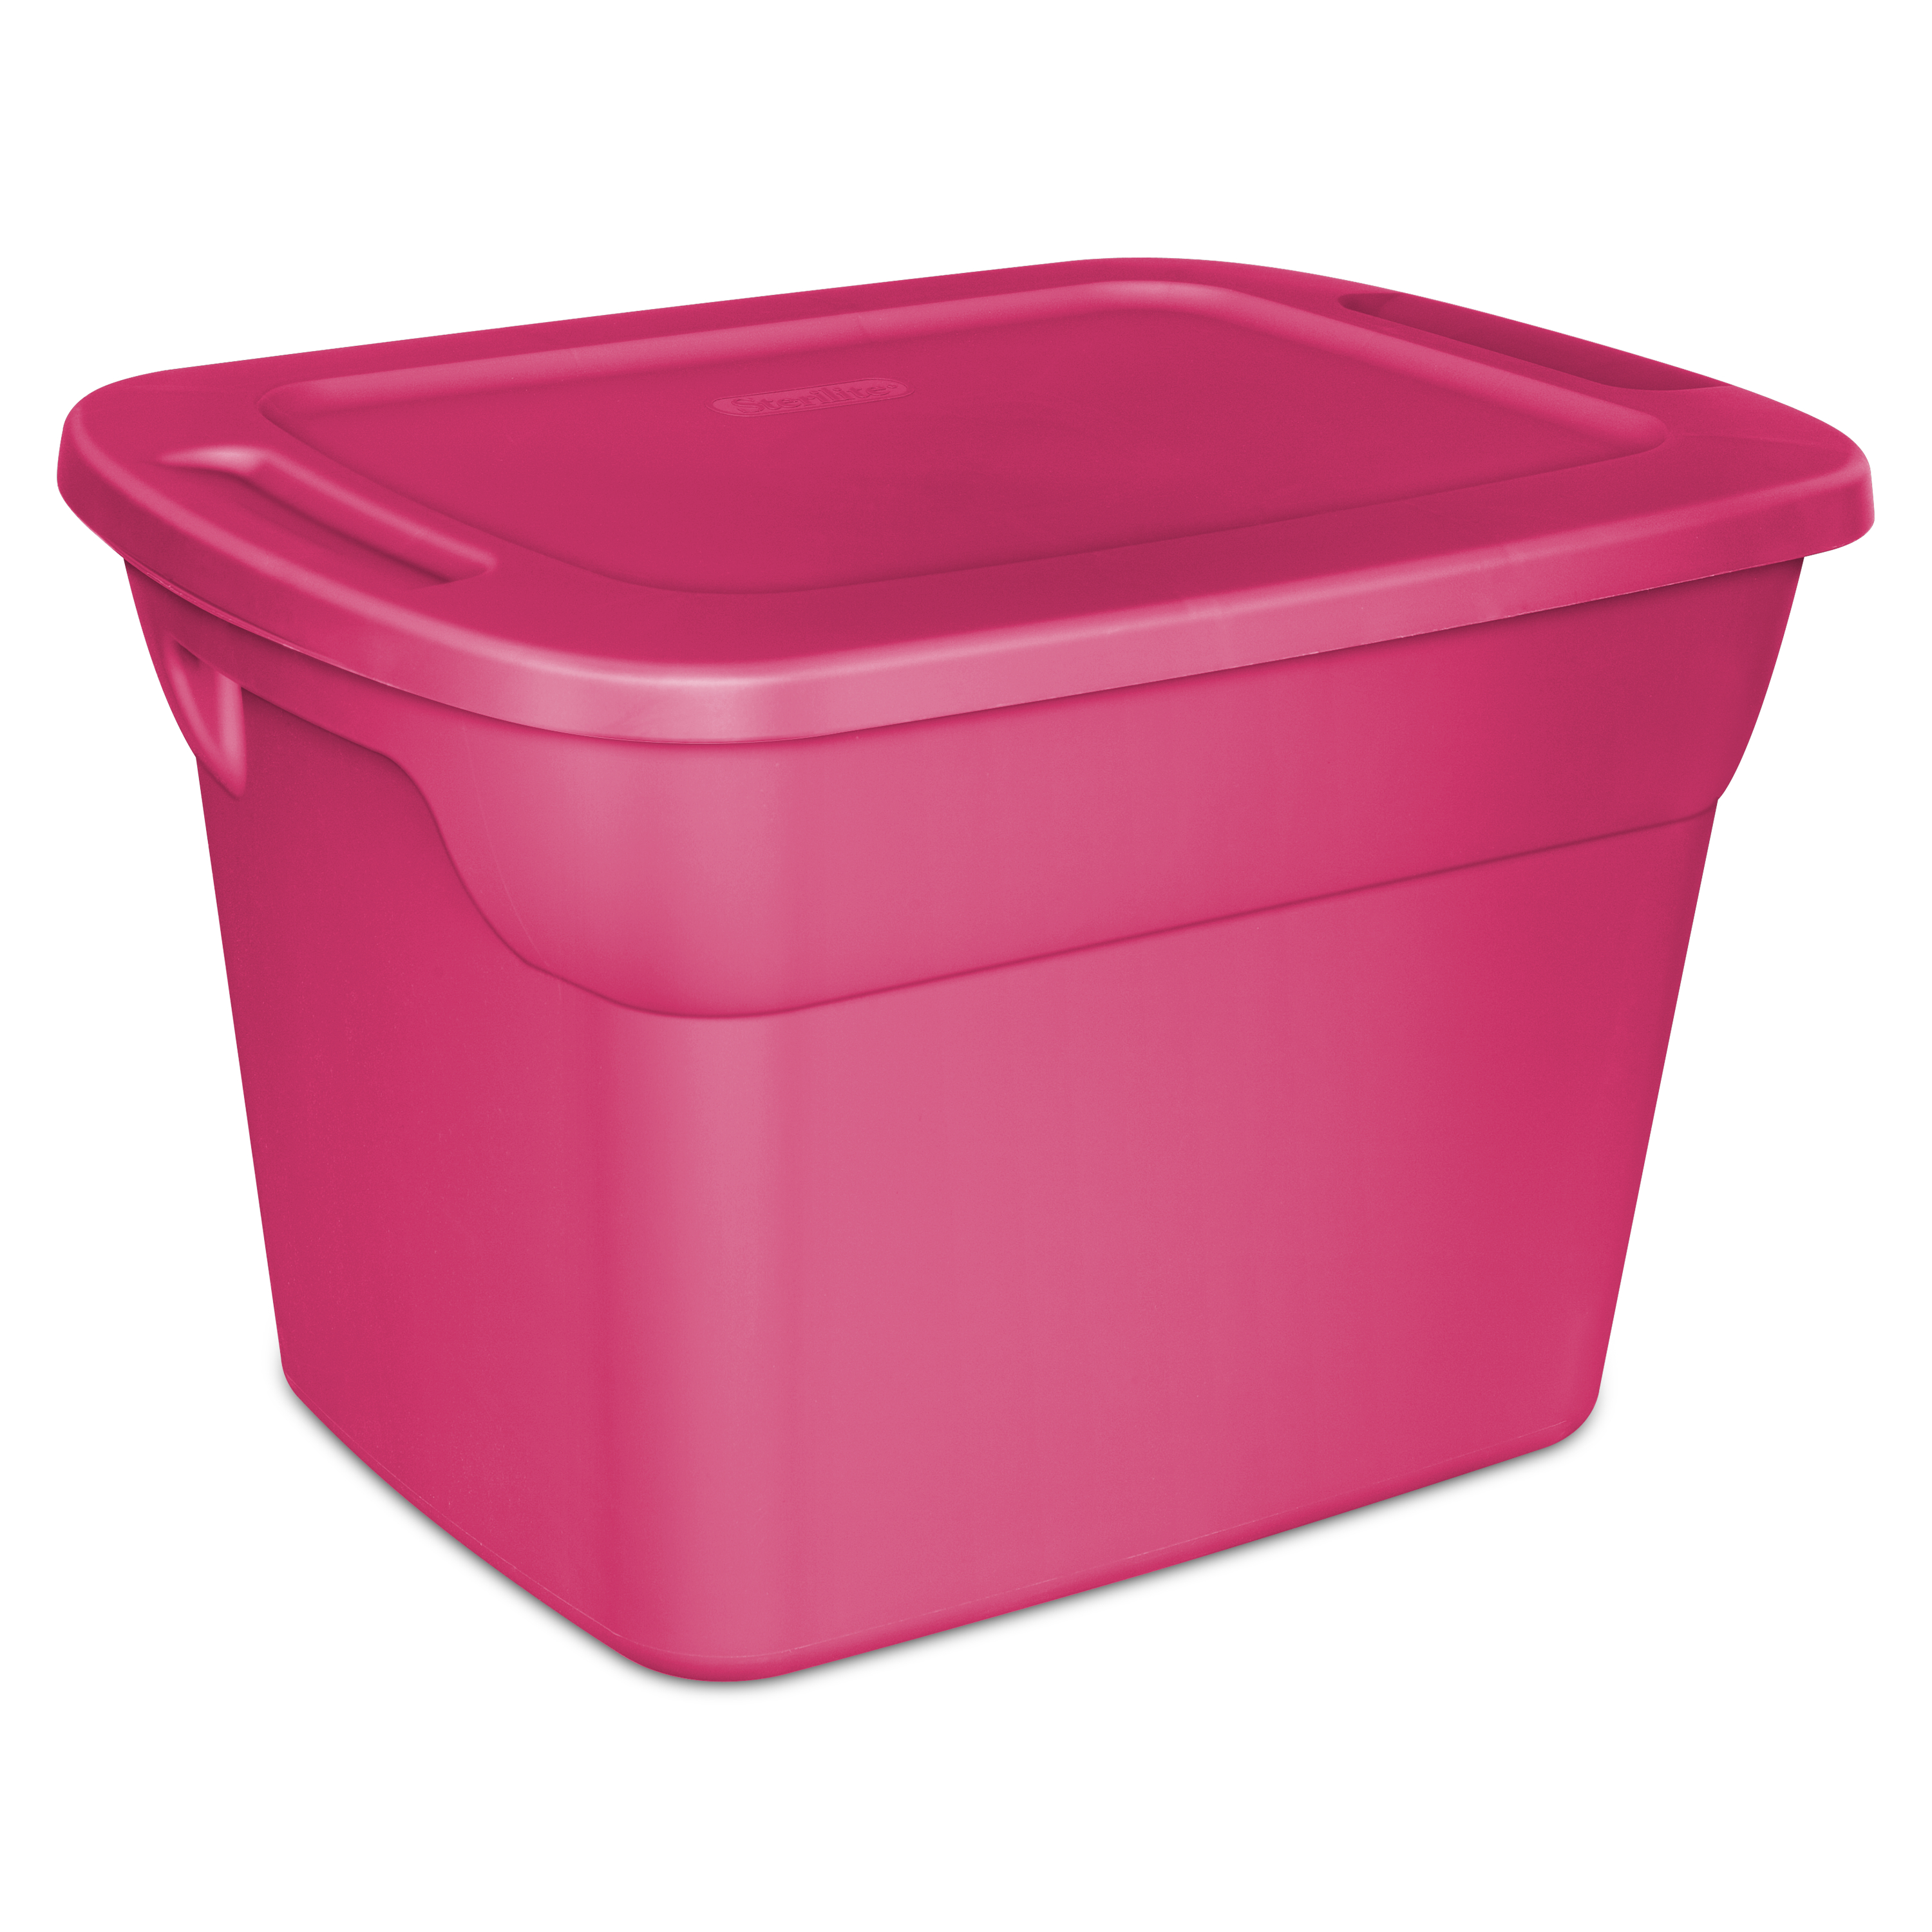 Sterilite 18 Gal./68 L Tote Box, Fuchsia Burst (Available in a Case of 8 or Single Unit)